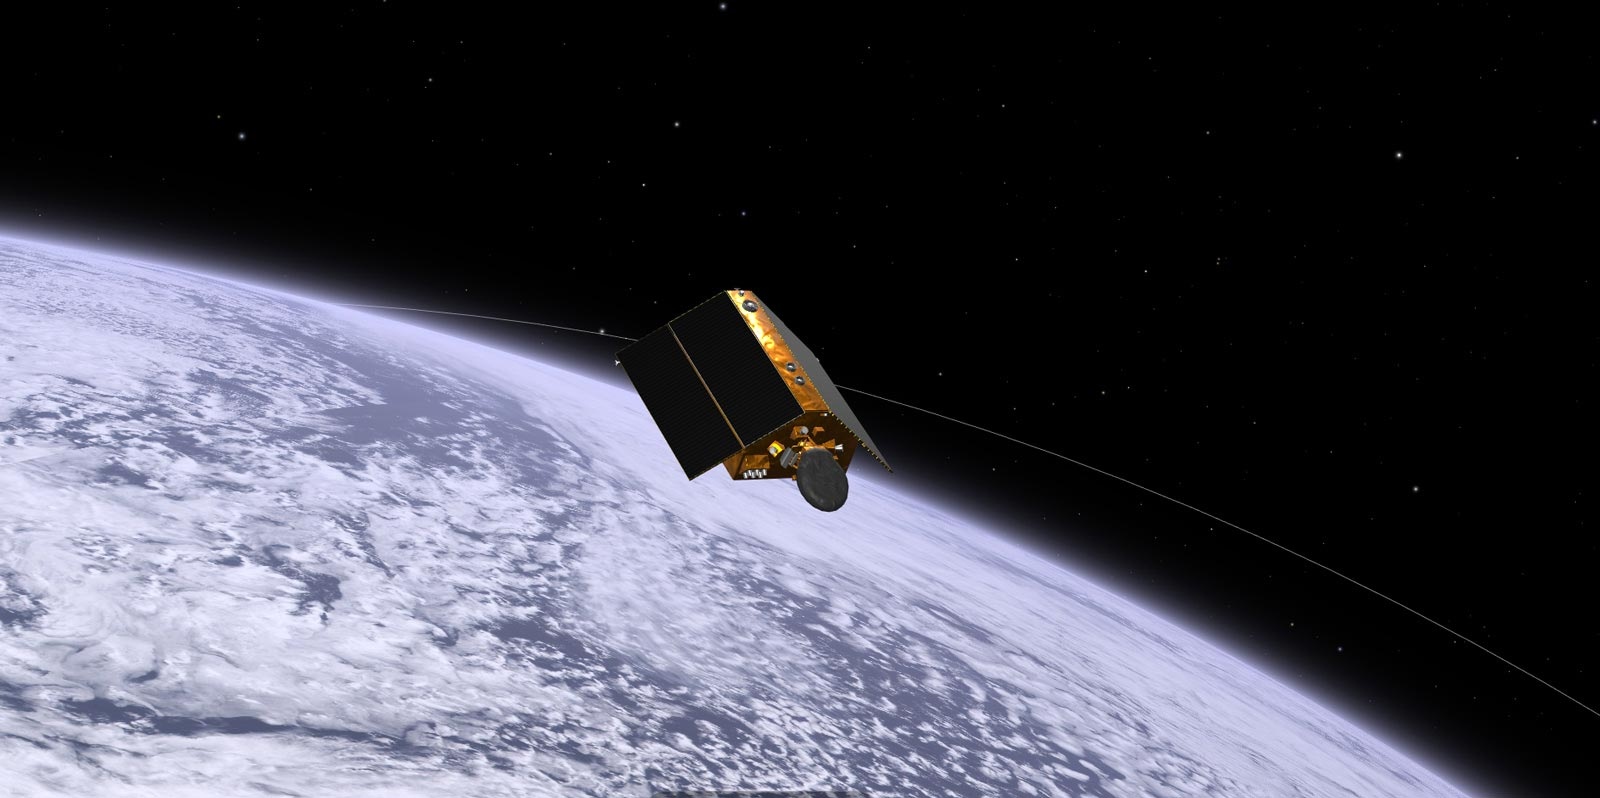 Follow Sentinel-6 Michael Freilich in Real Time As It Orbits Earth, Gathering Critical Measurements - SciTechDaily